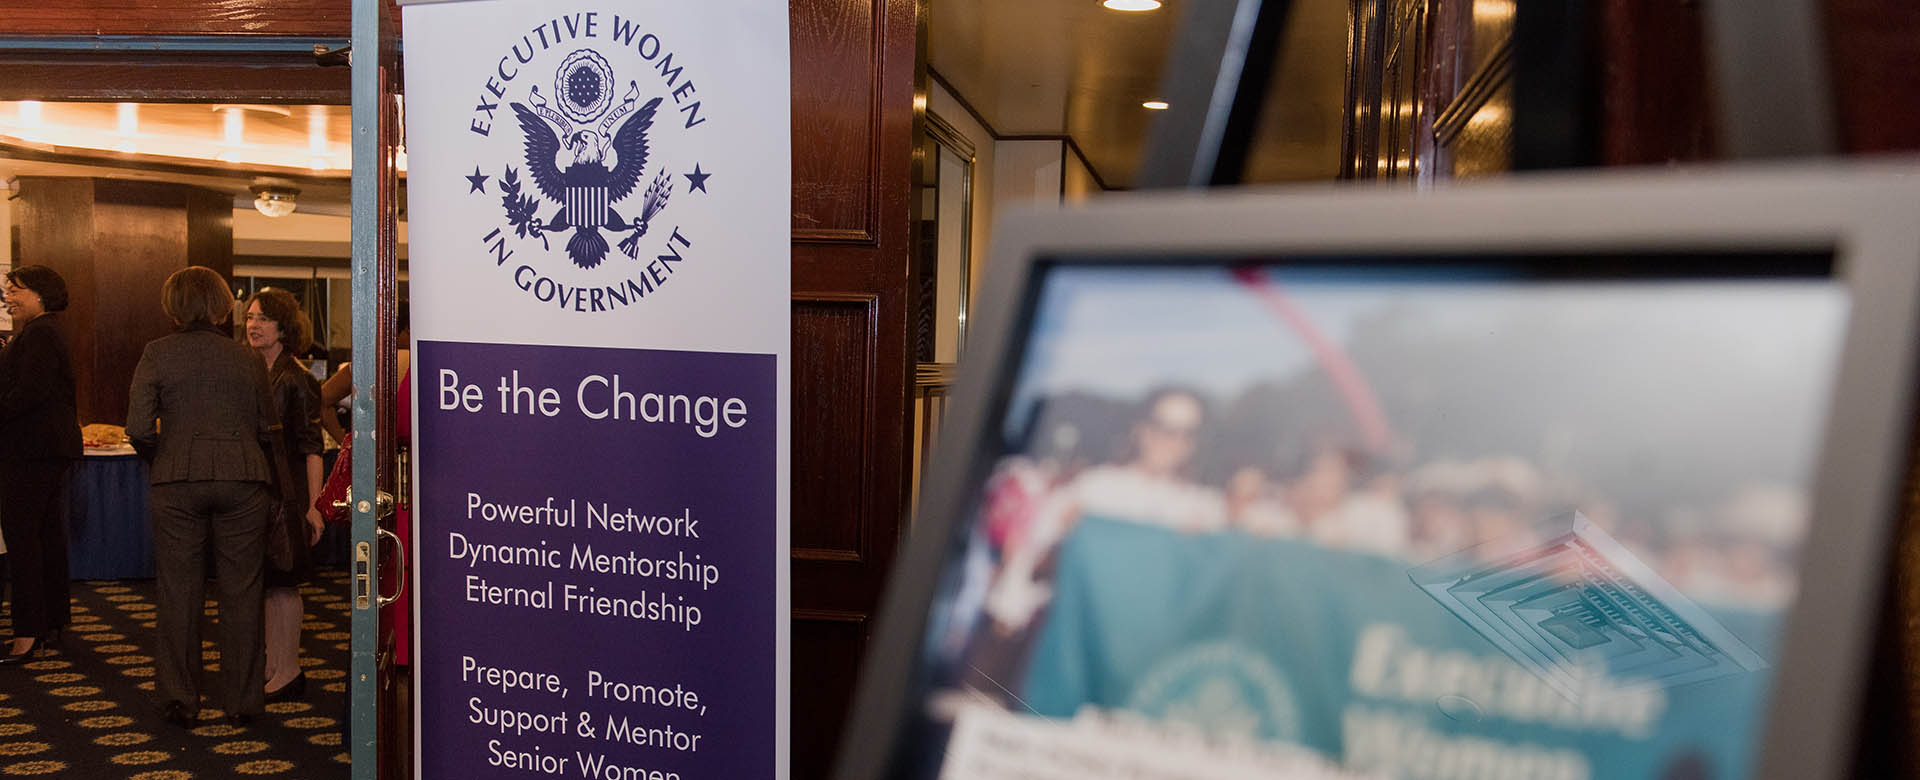 Ways to Support the Executive Women in Government